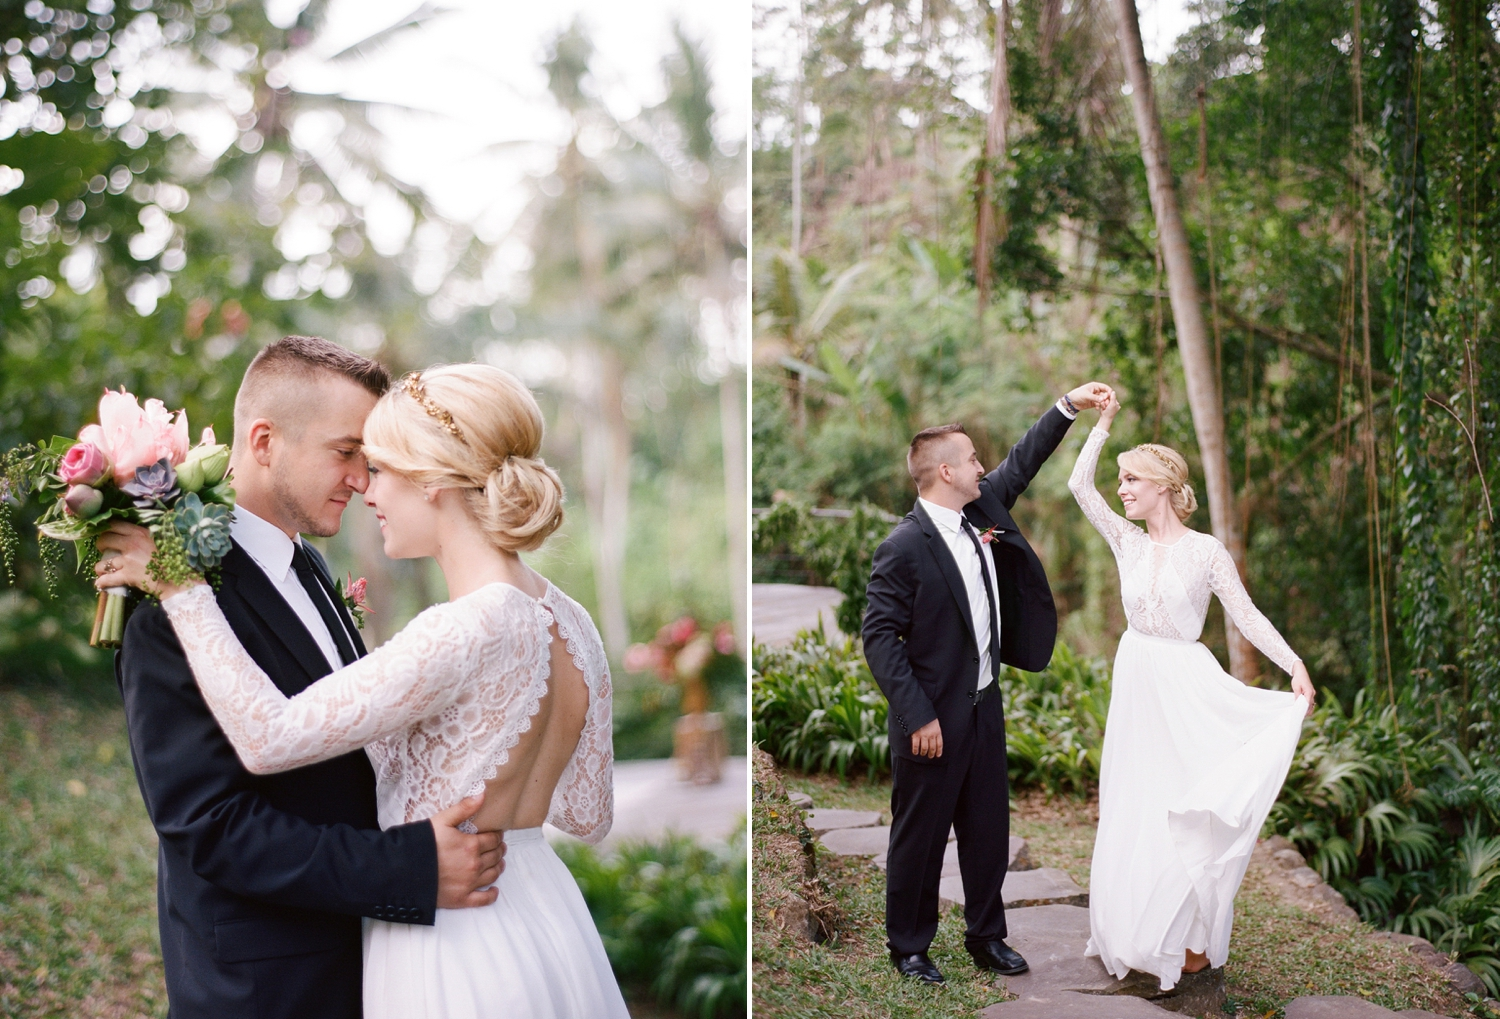 villa wedding in bali, destination wedding